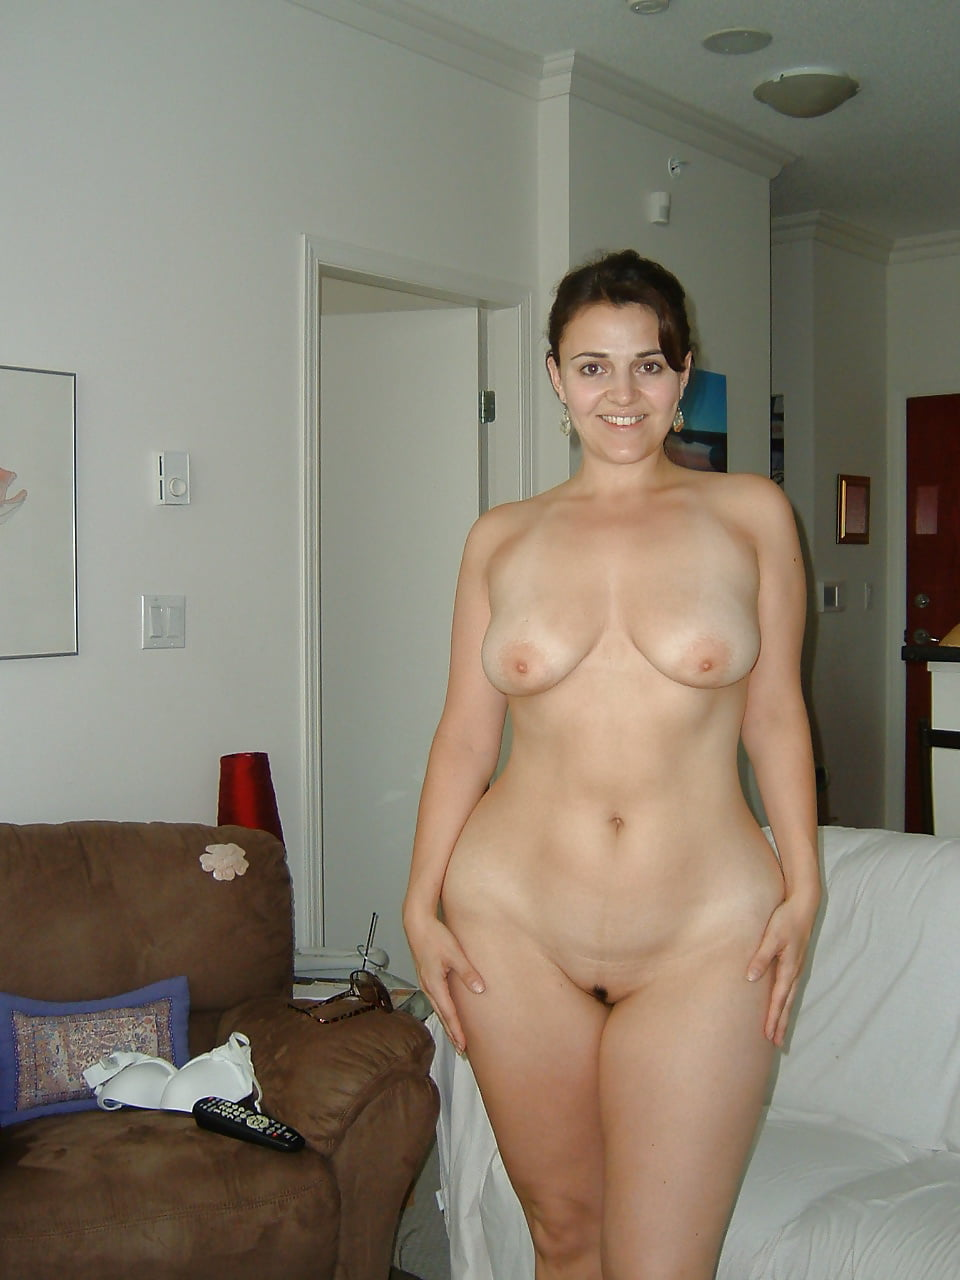 Free pictures of a naked wife #9